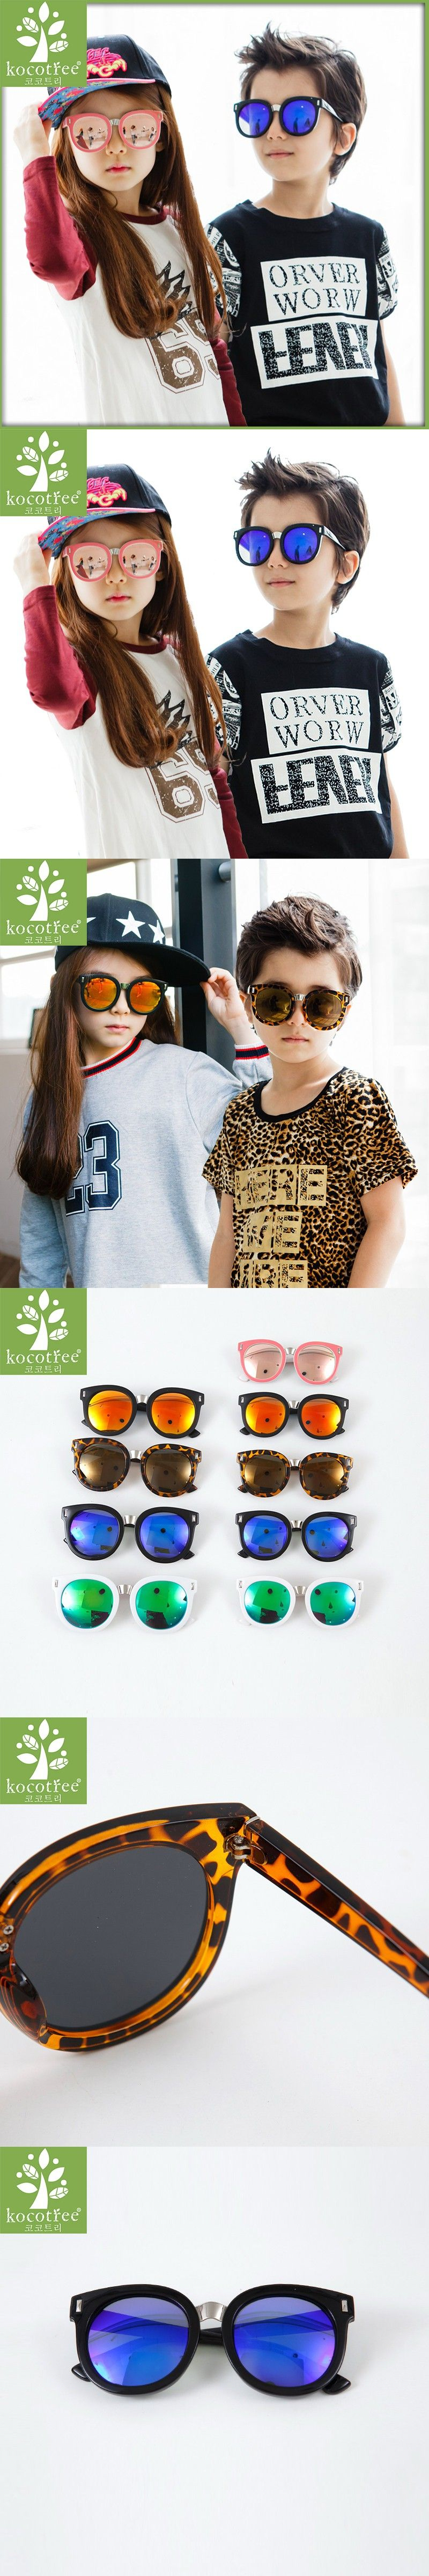 d9a9b73ba31 Kocotree 2016 round parents child sunglasses adult kids two sizes  Photochromic lenses anti-UV plastic